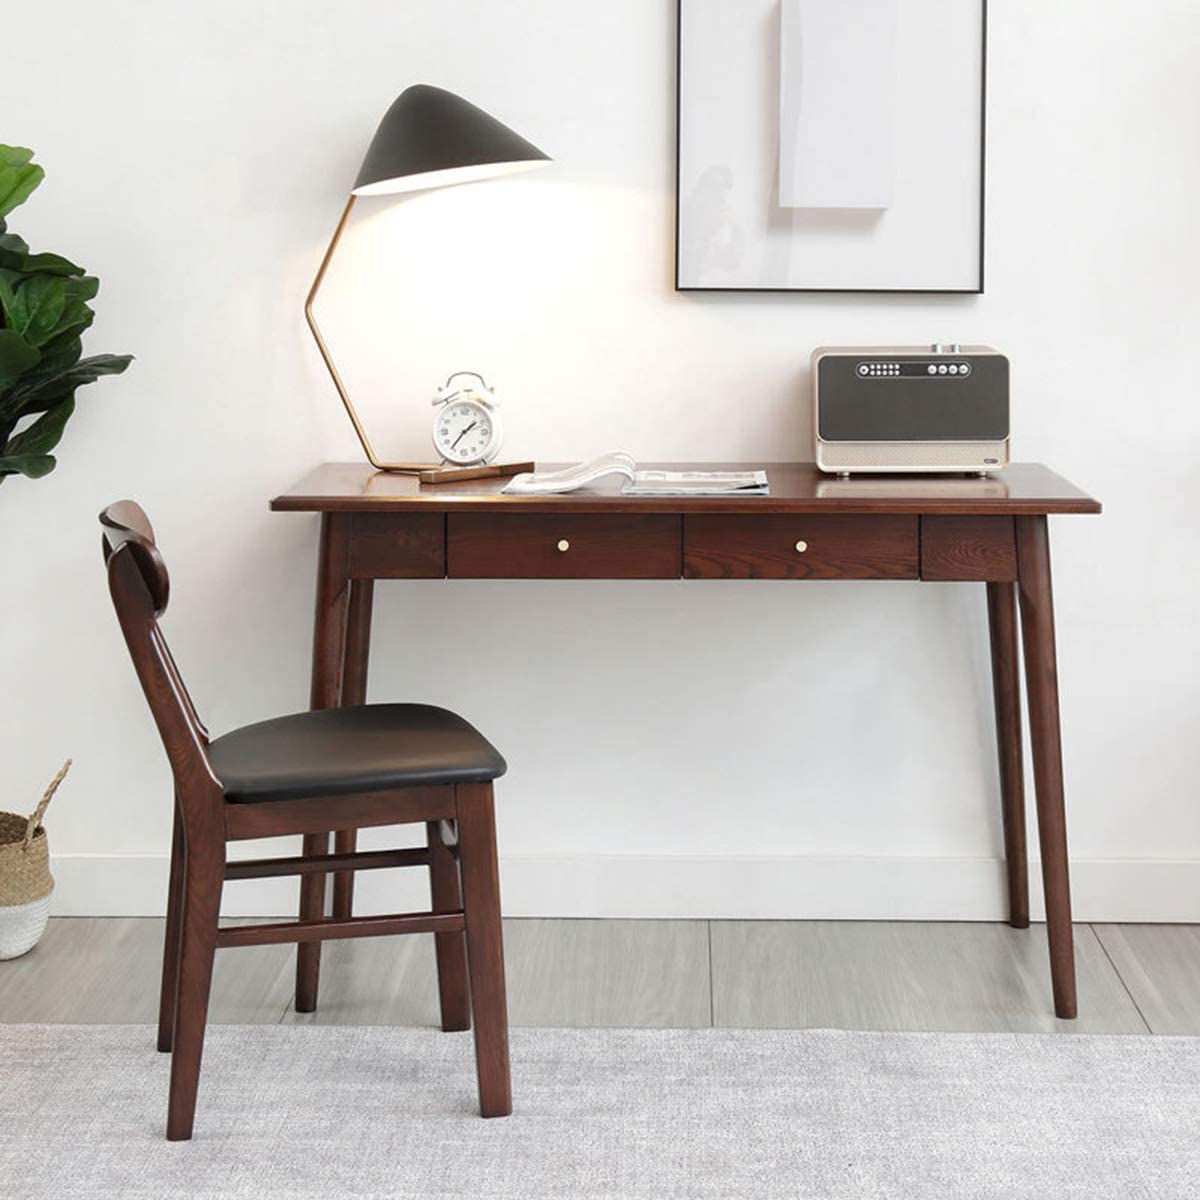 CClz Fillet Computer Desk Table,Solid Wood Laptop Pc Table 3 Drawers,Waterproof Computer Workstation,Modern Nordic Home Office Table